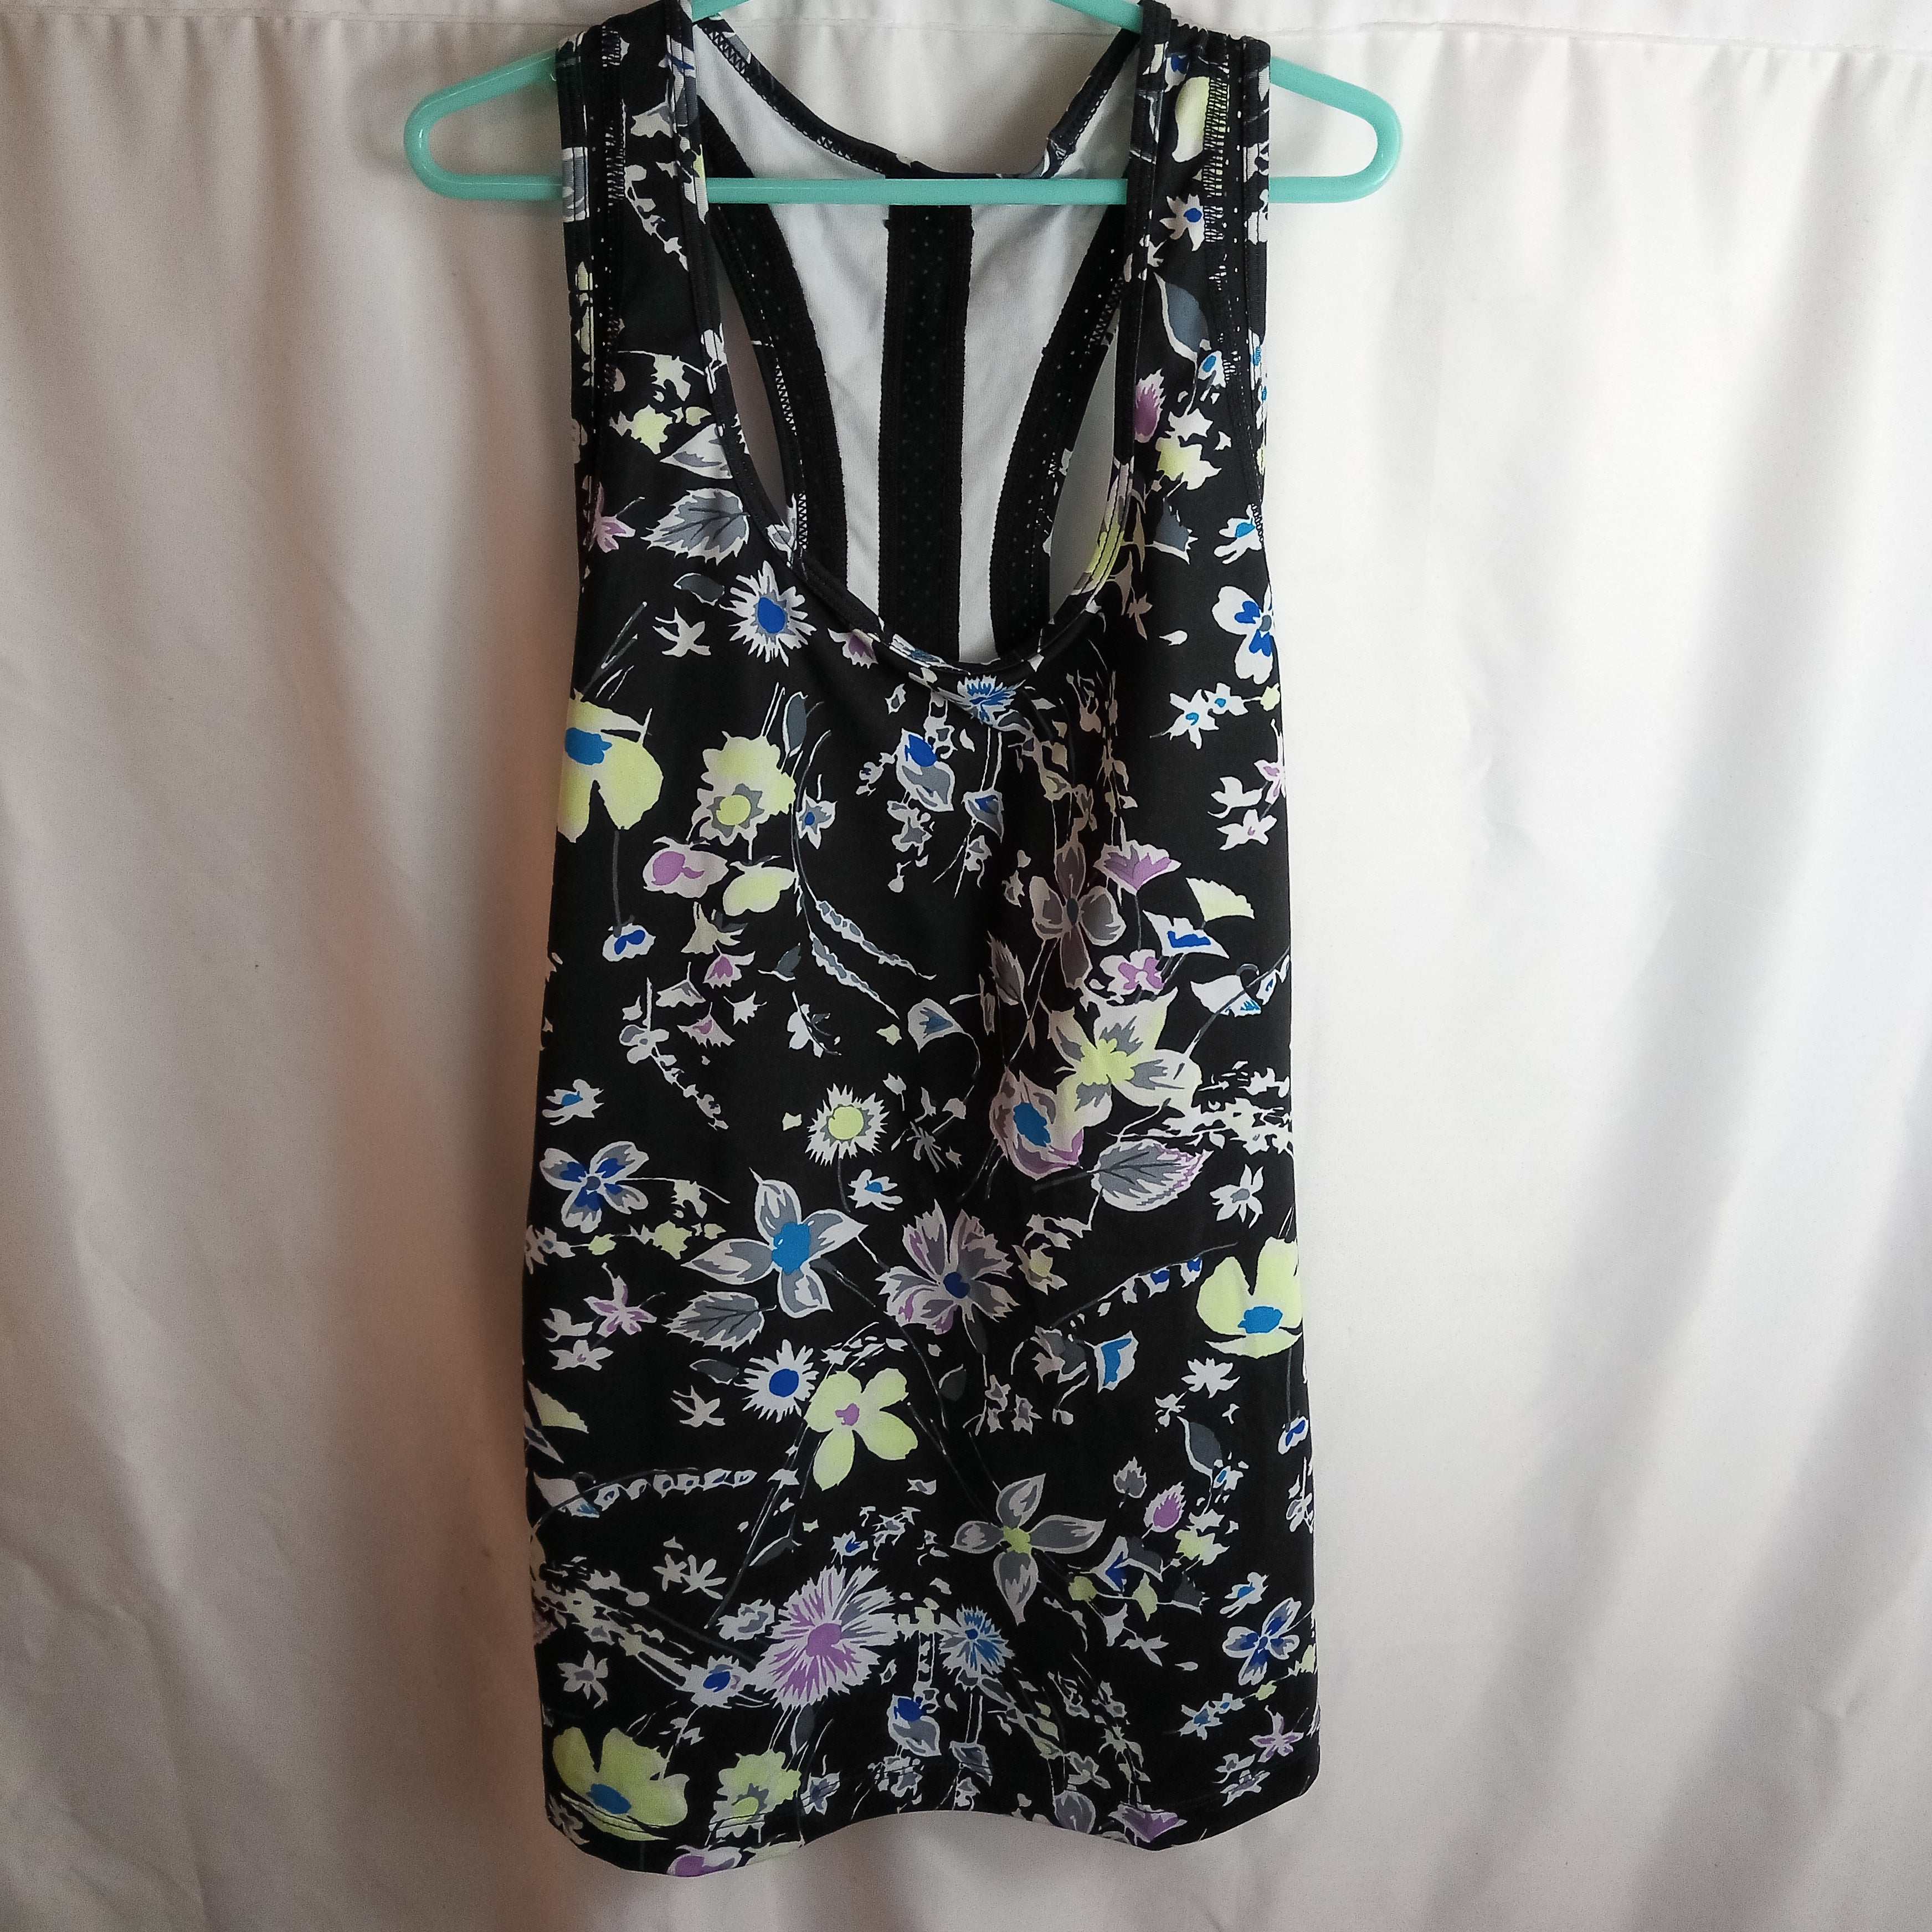 Pre-Loved Gapfit Vest Size XS Condition Good